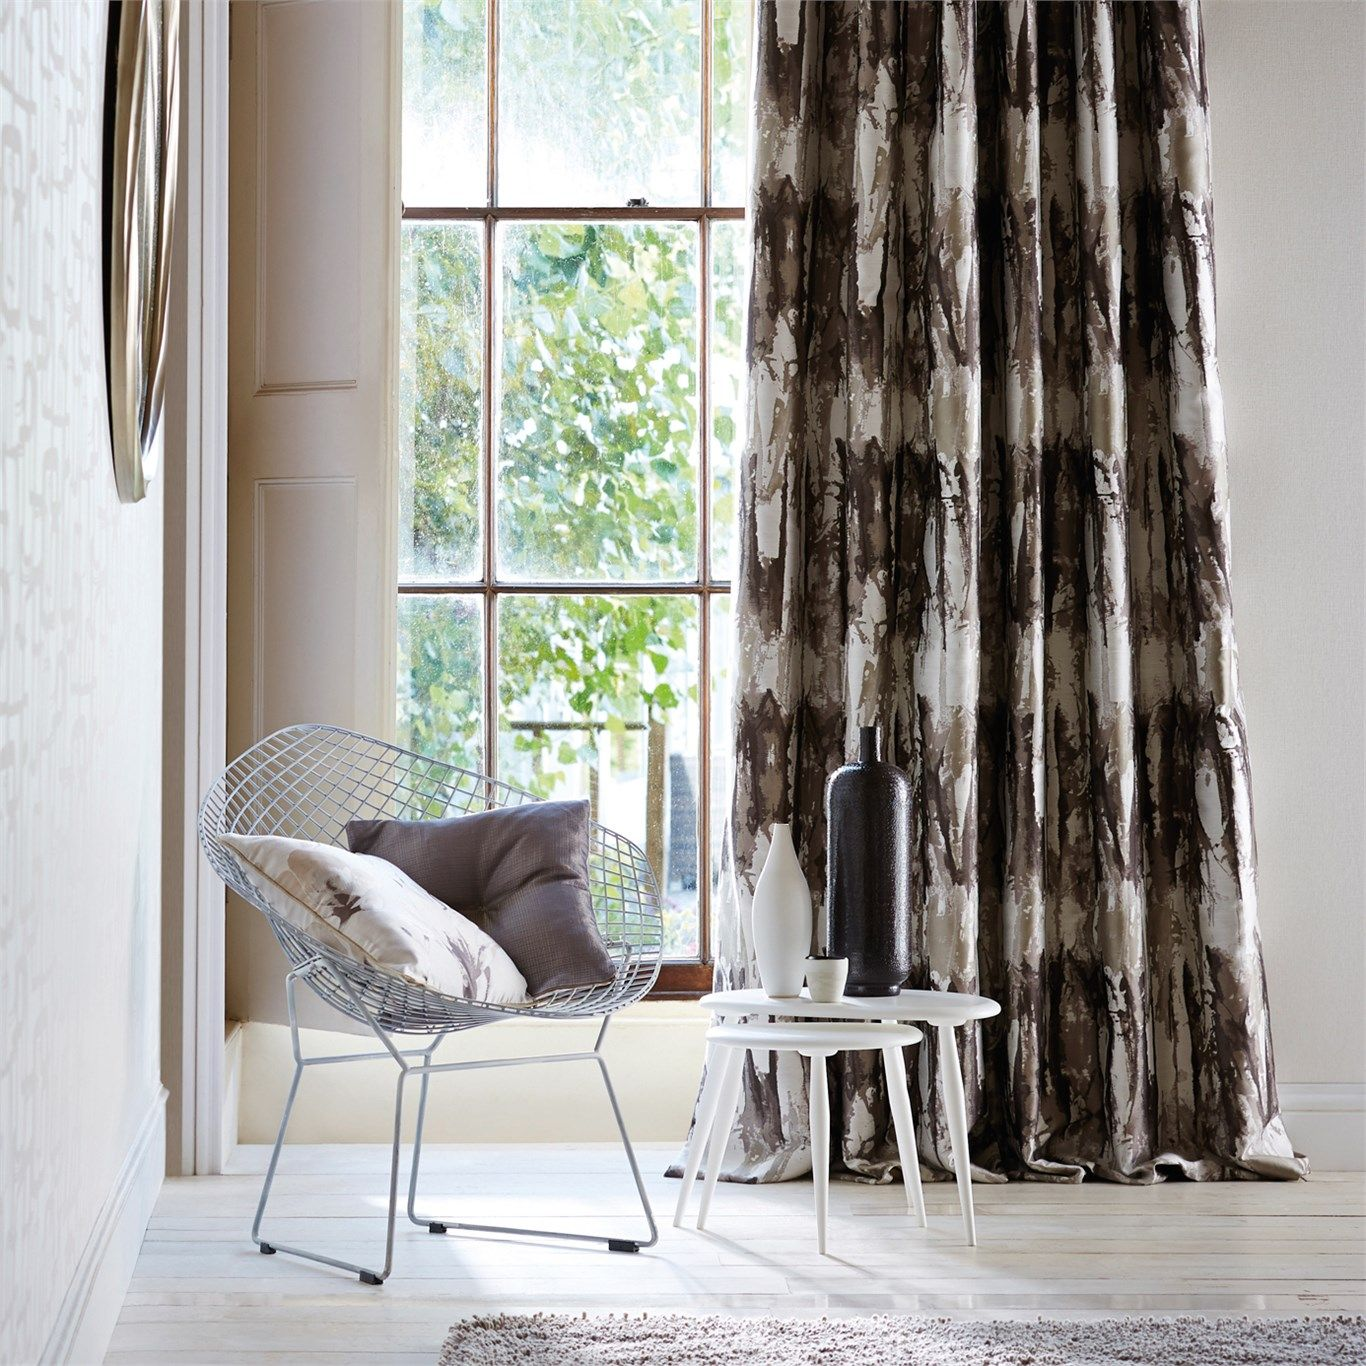 Products harlequin designer fabrics and wallpapers paradise - Products Harlequin Designer Fabrics And Wallpapers Takara Hmos131369 Momentum 5